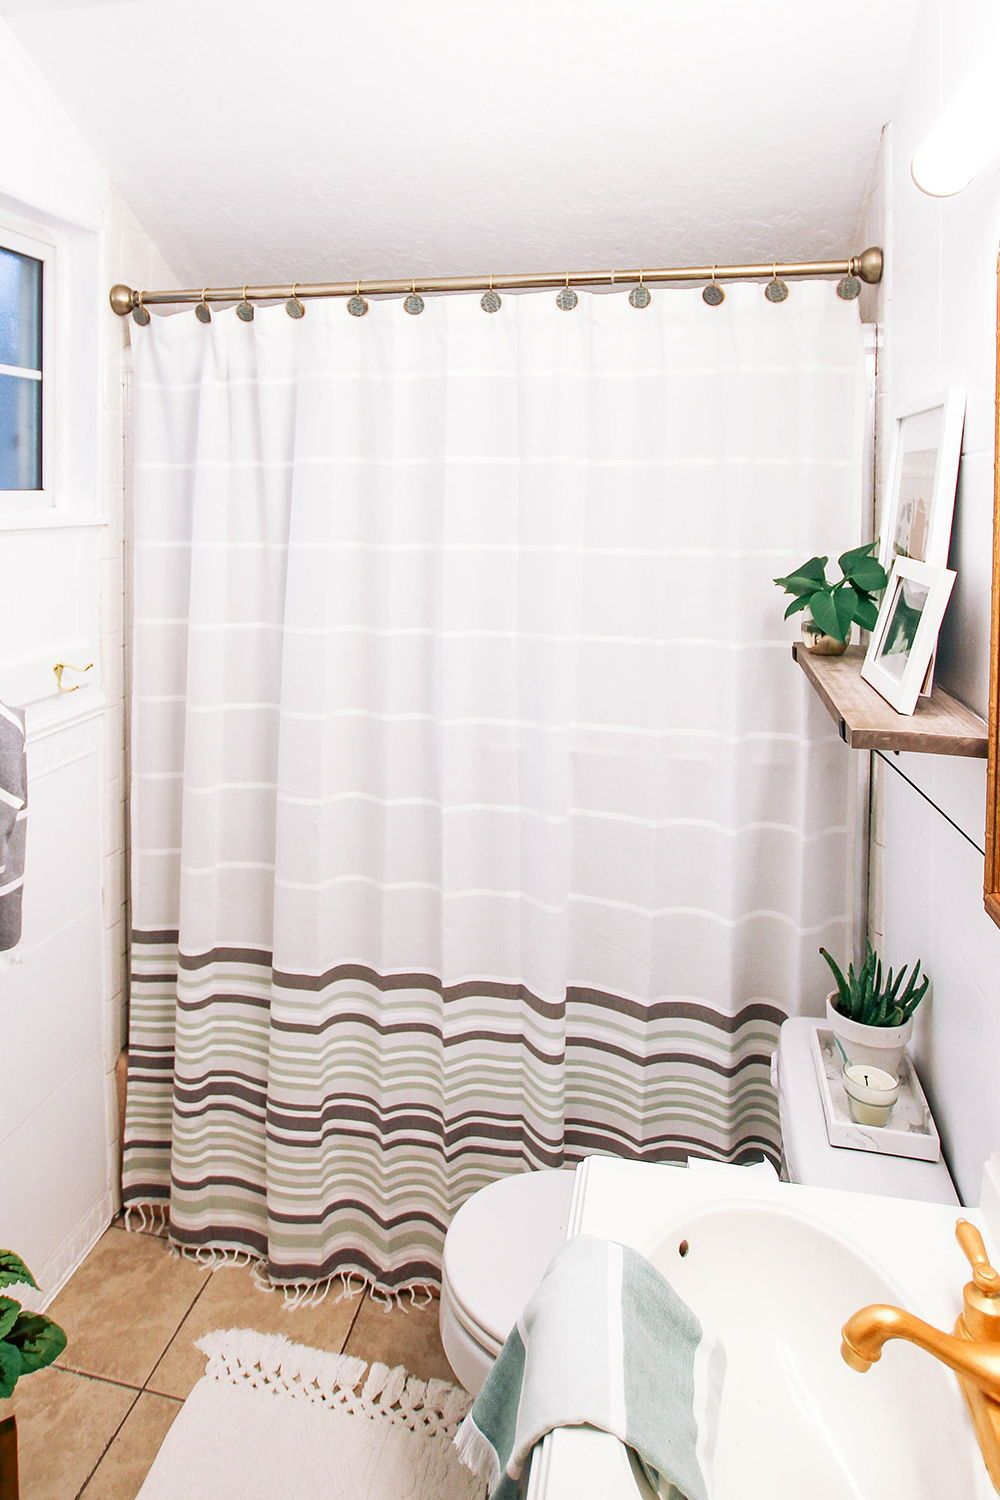 Home In 2020 Modern Shower Curtains Striped Shower Curtains Unique Shower Curtain